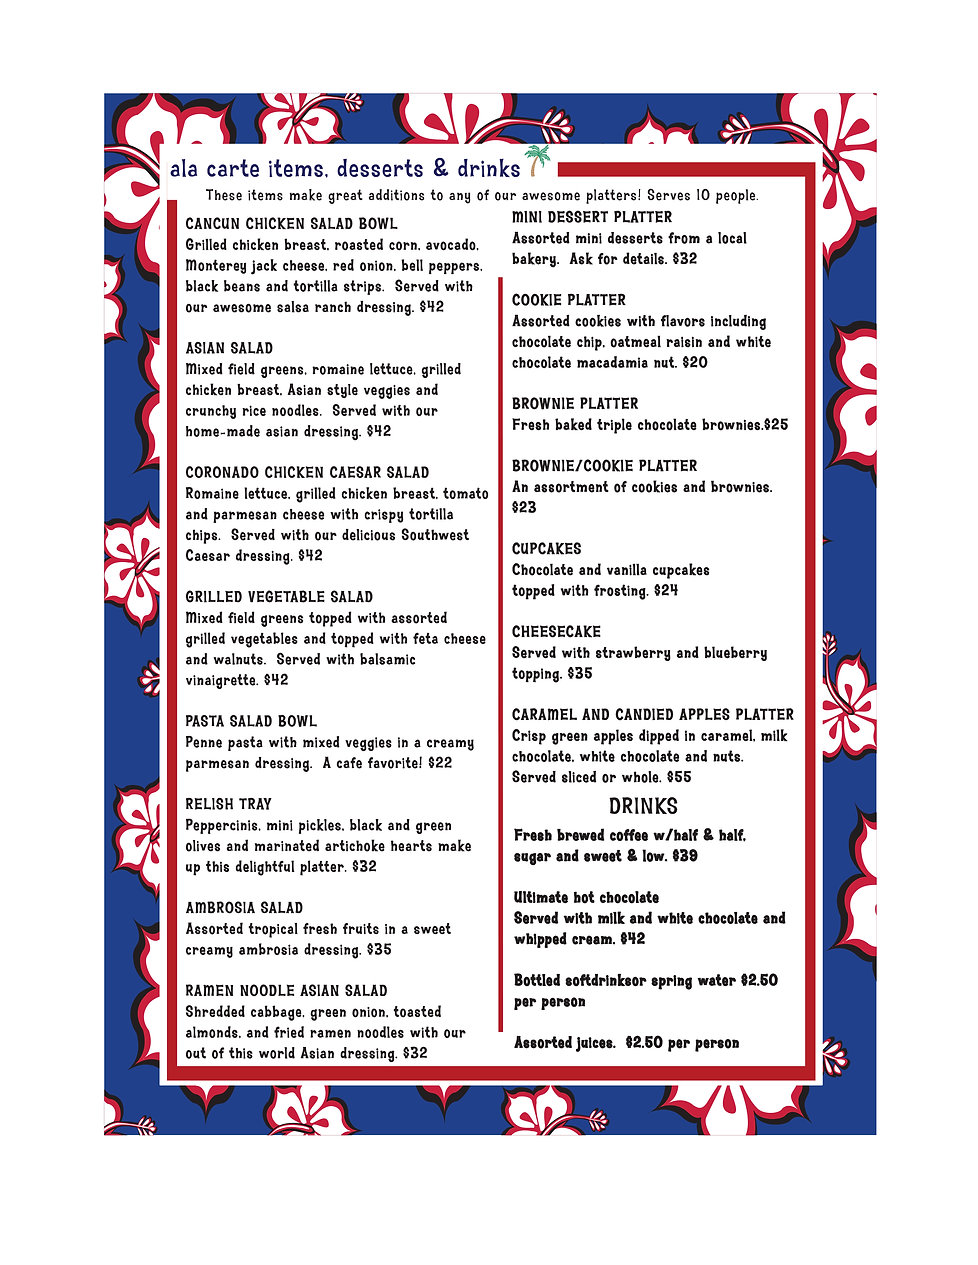 Beach Cafe Catering Menu -6.jpg